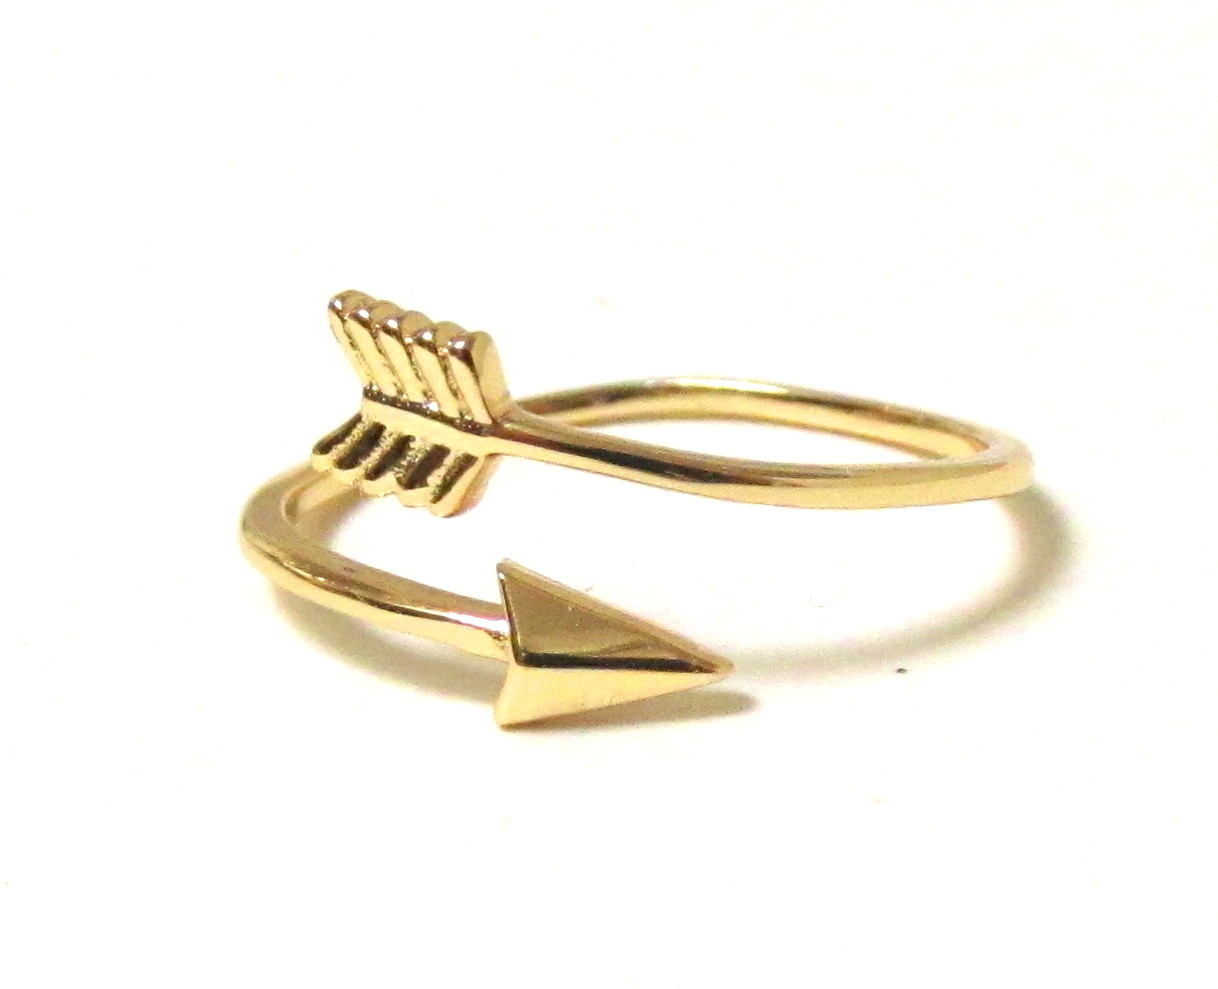 Arrow Ring - 14 Kt Gold Over Sterling Silver Arrow Ring In Size 5 on Luulla